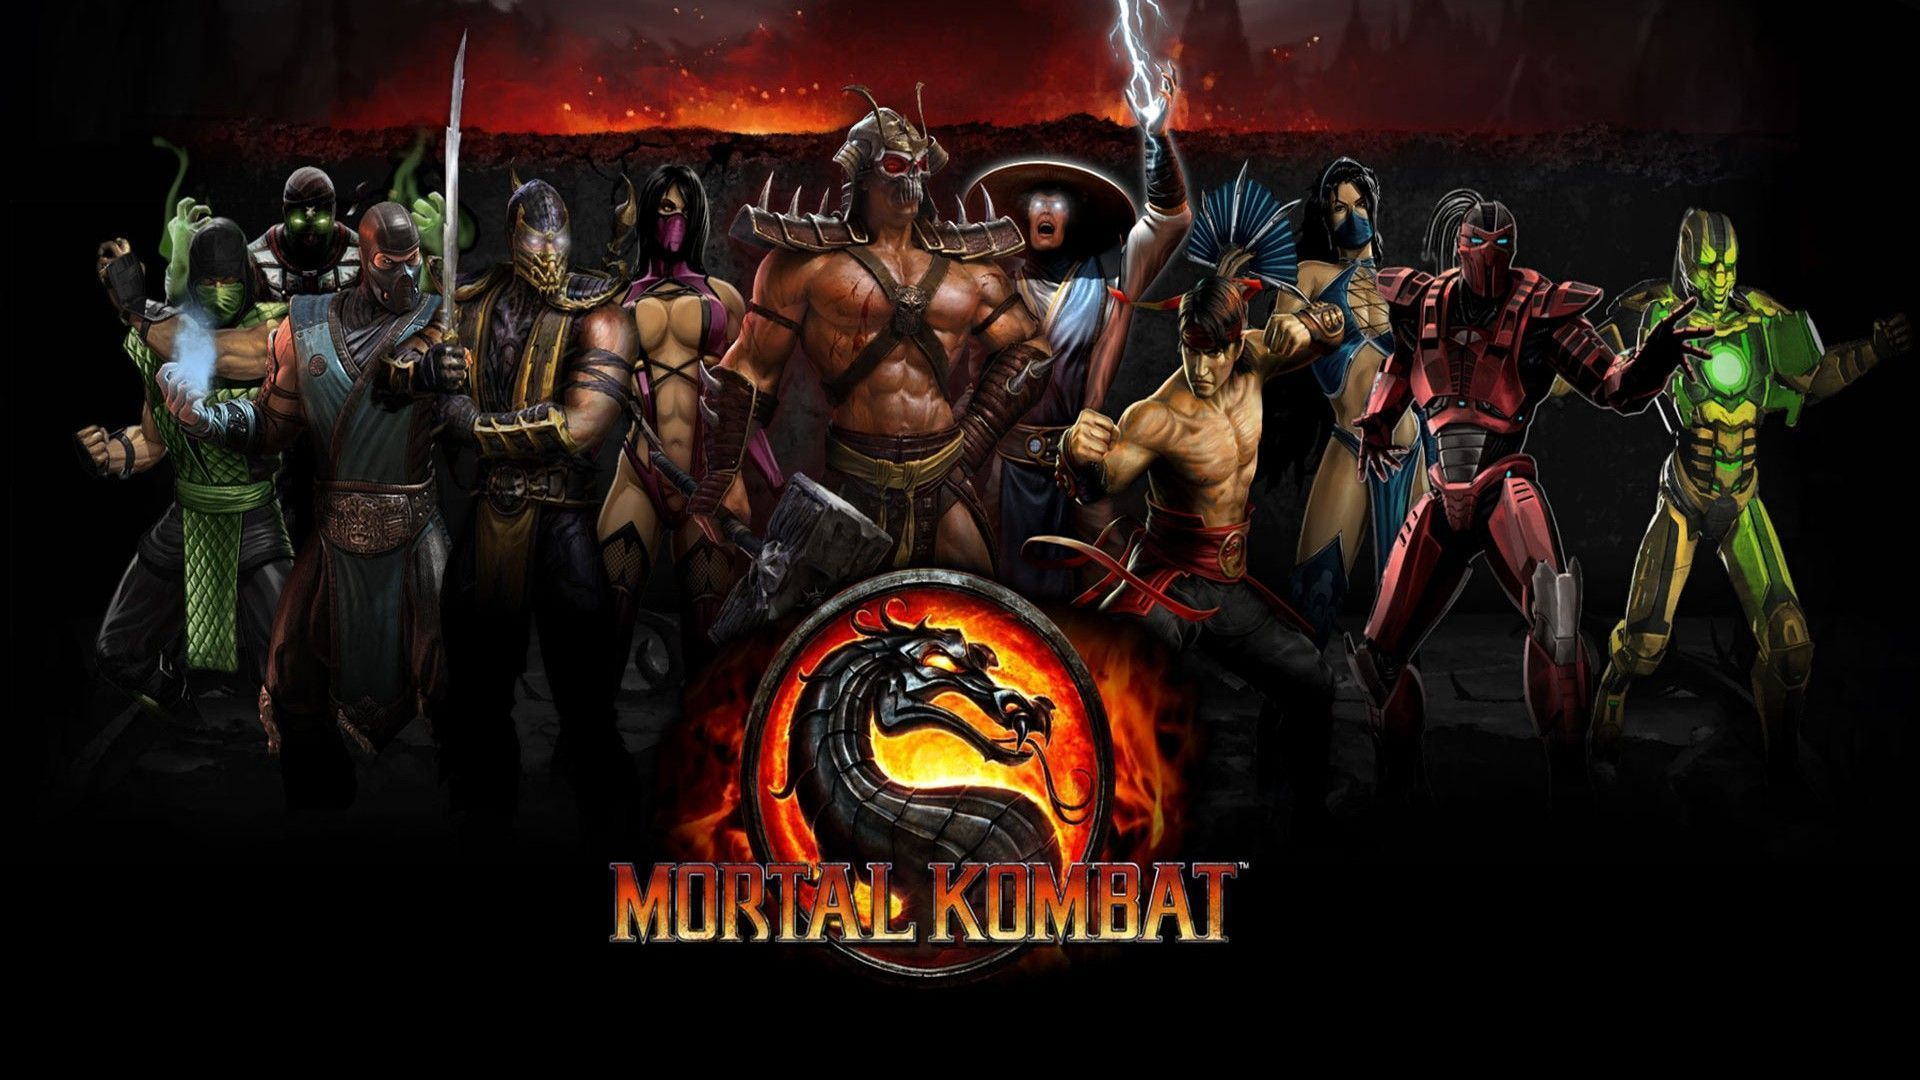 Mortal Kombat Wallpapers  HD Wallpapers Early (With images